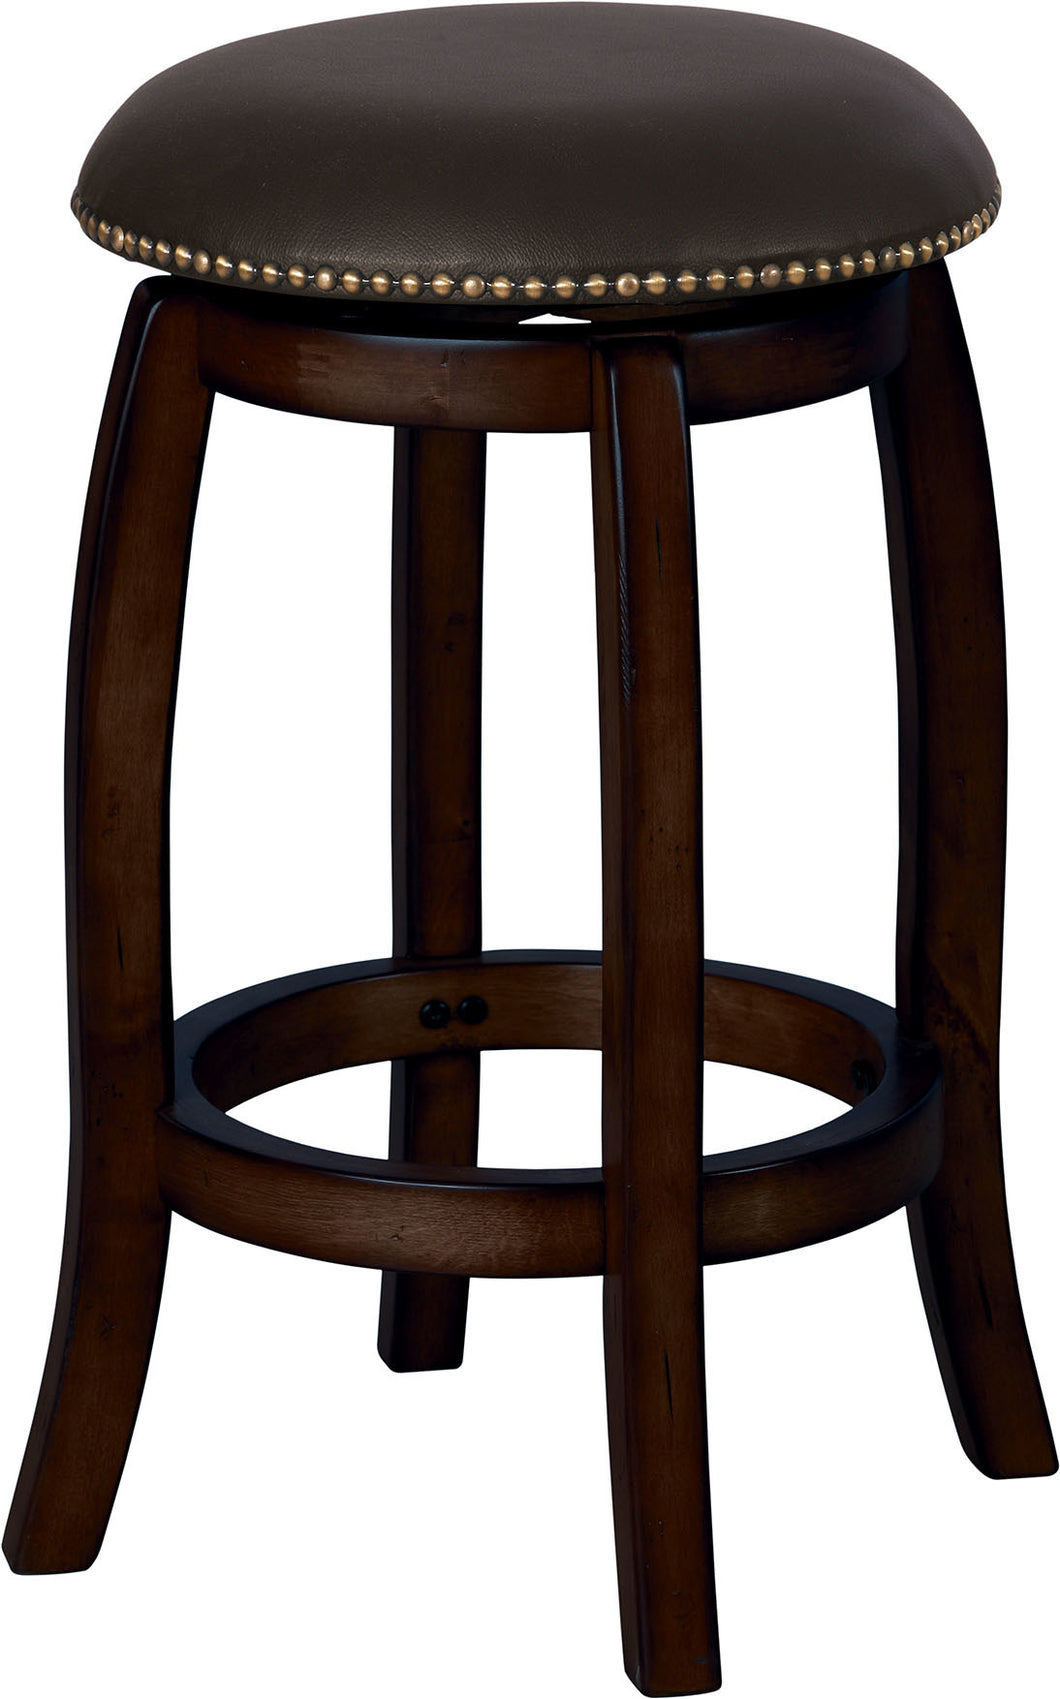 Acme Chelsea Bar Stool with Swivel, Black Leather & Espresso